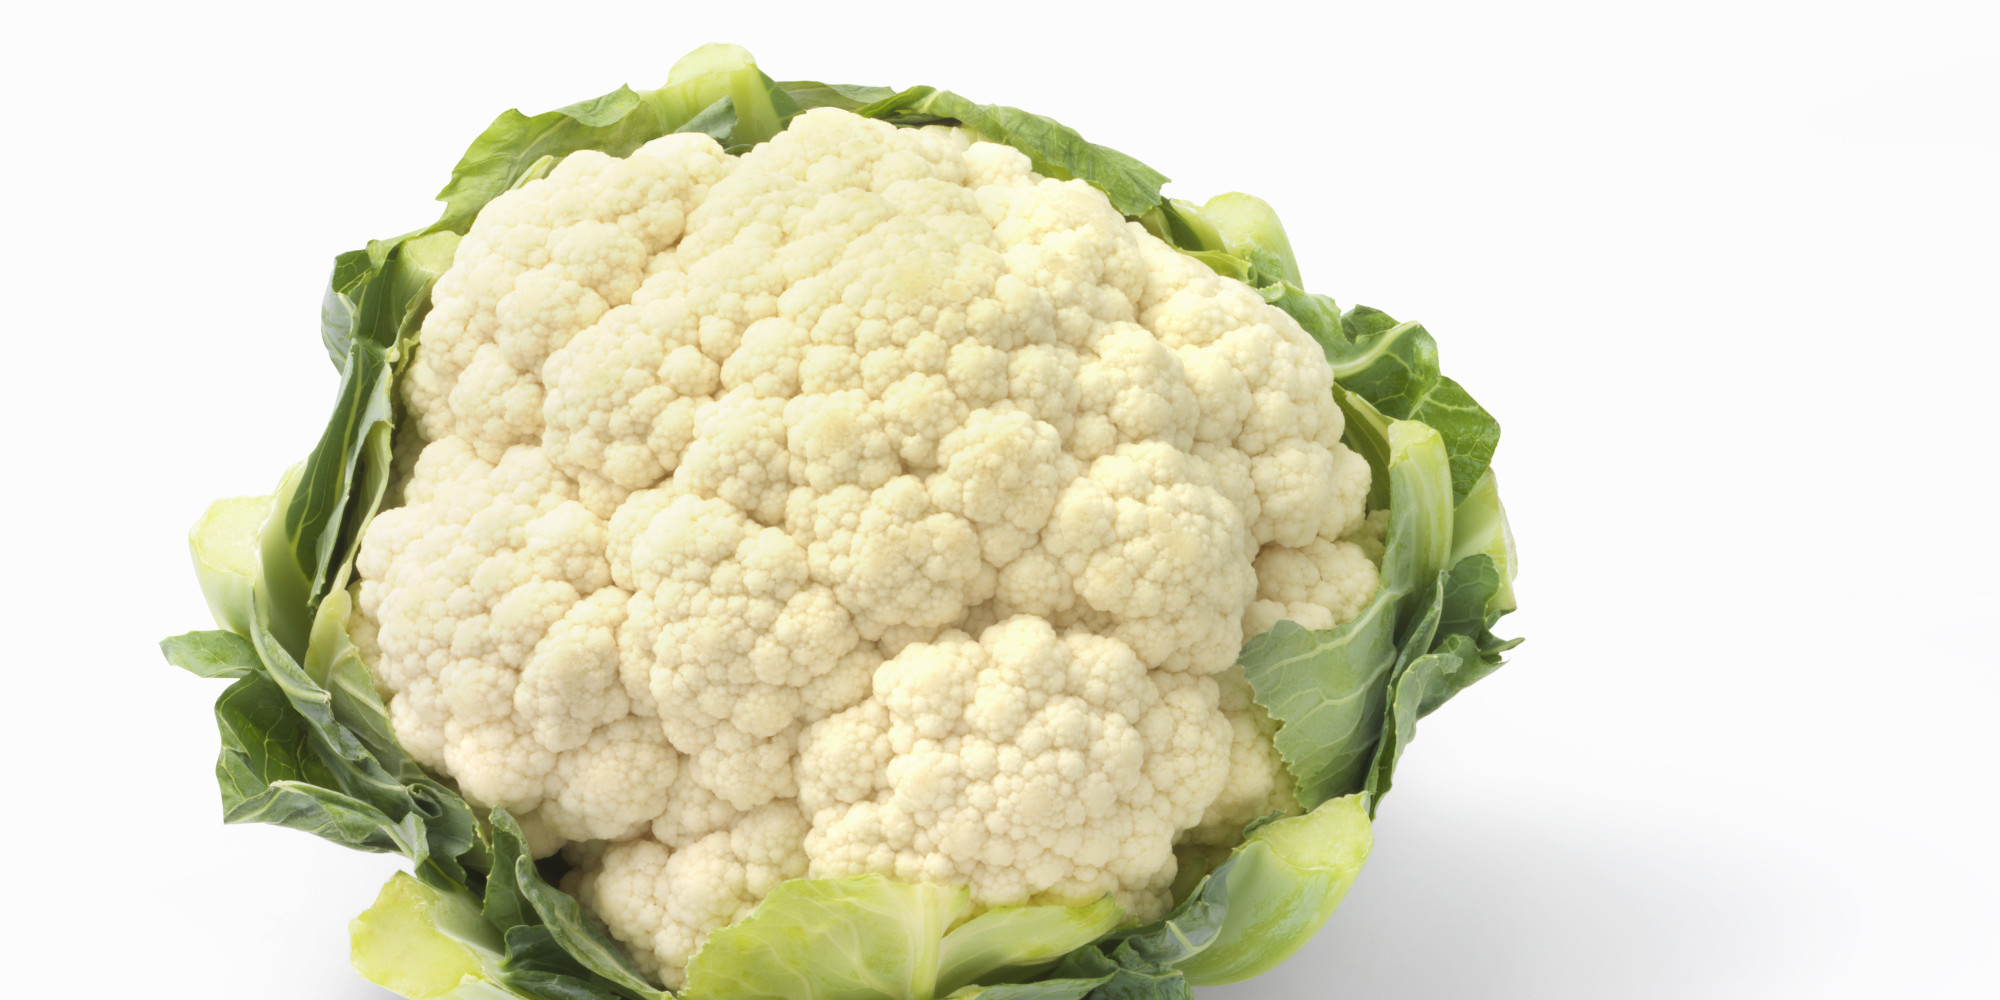 cauliflower - not get fat while eating full